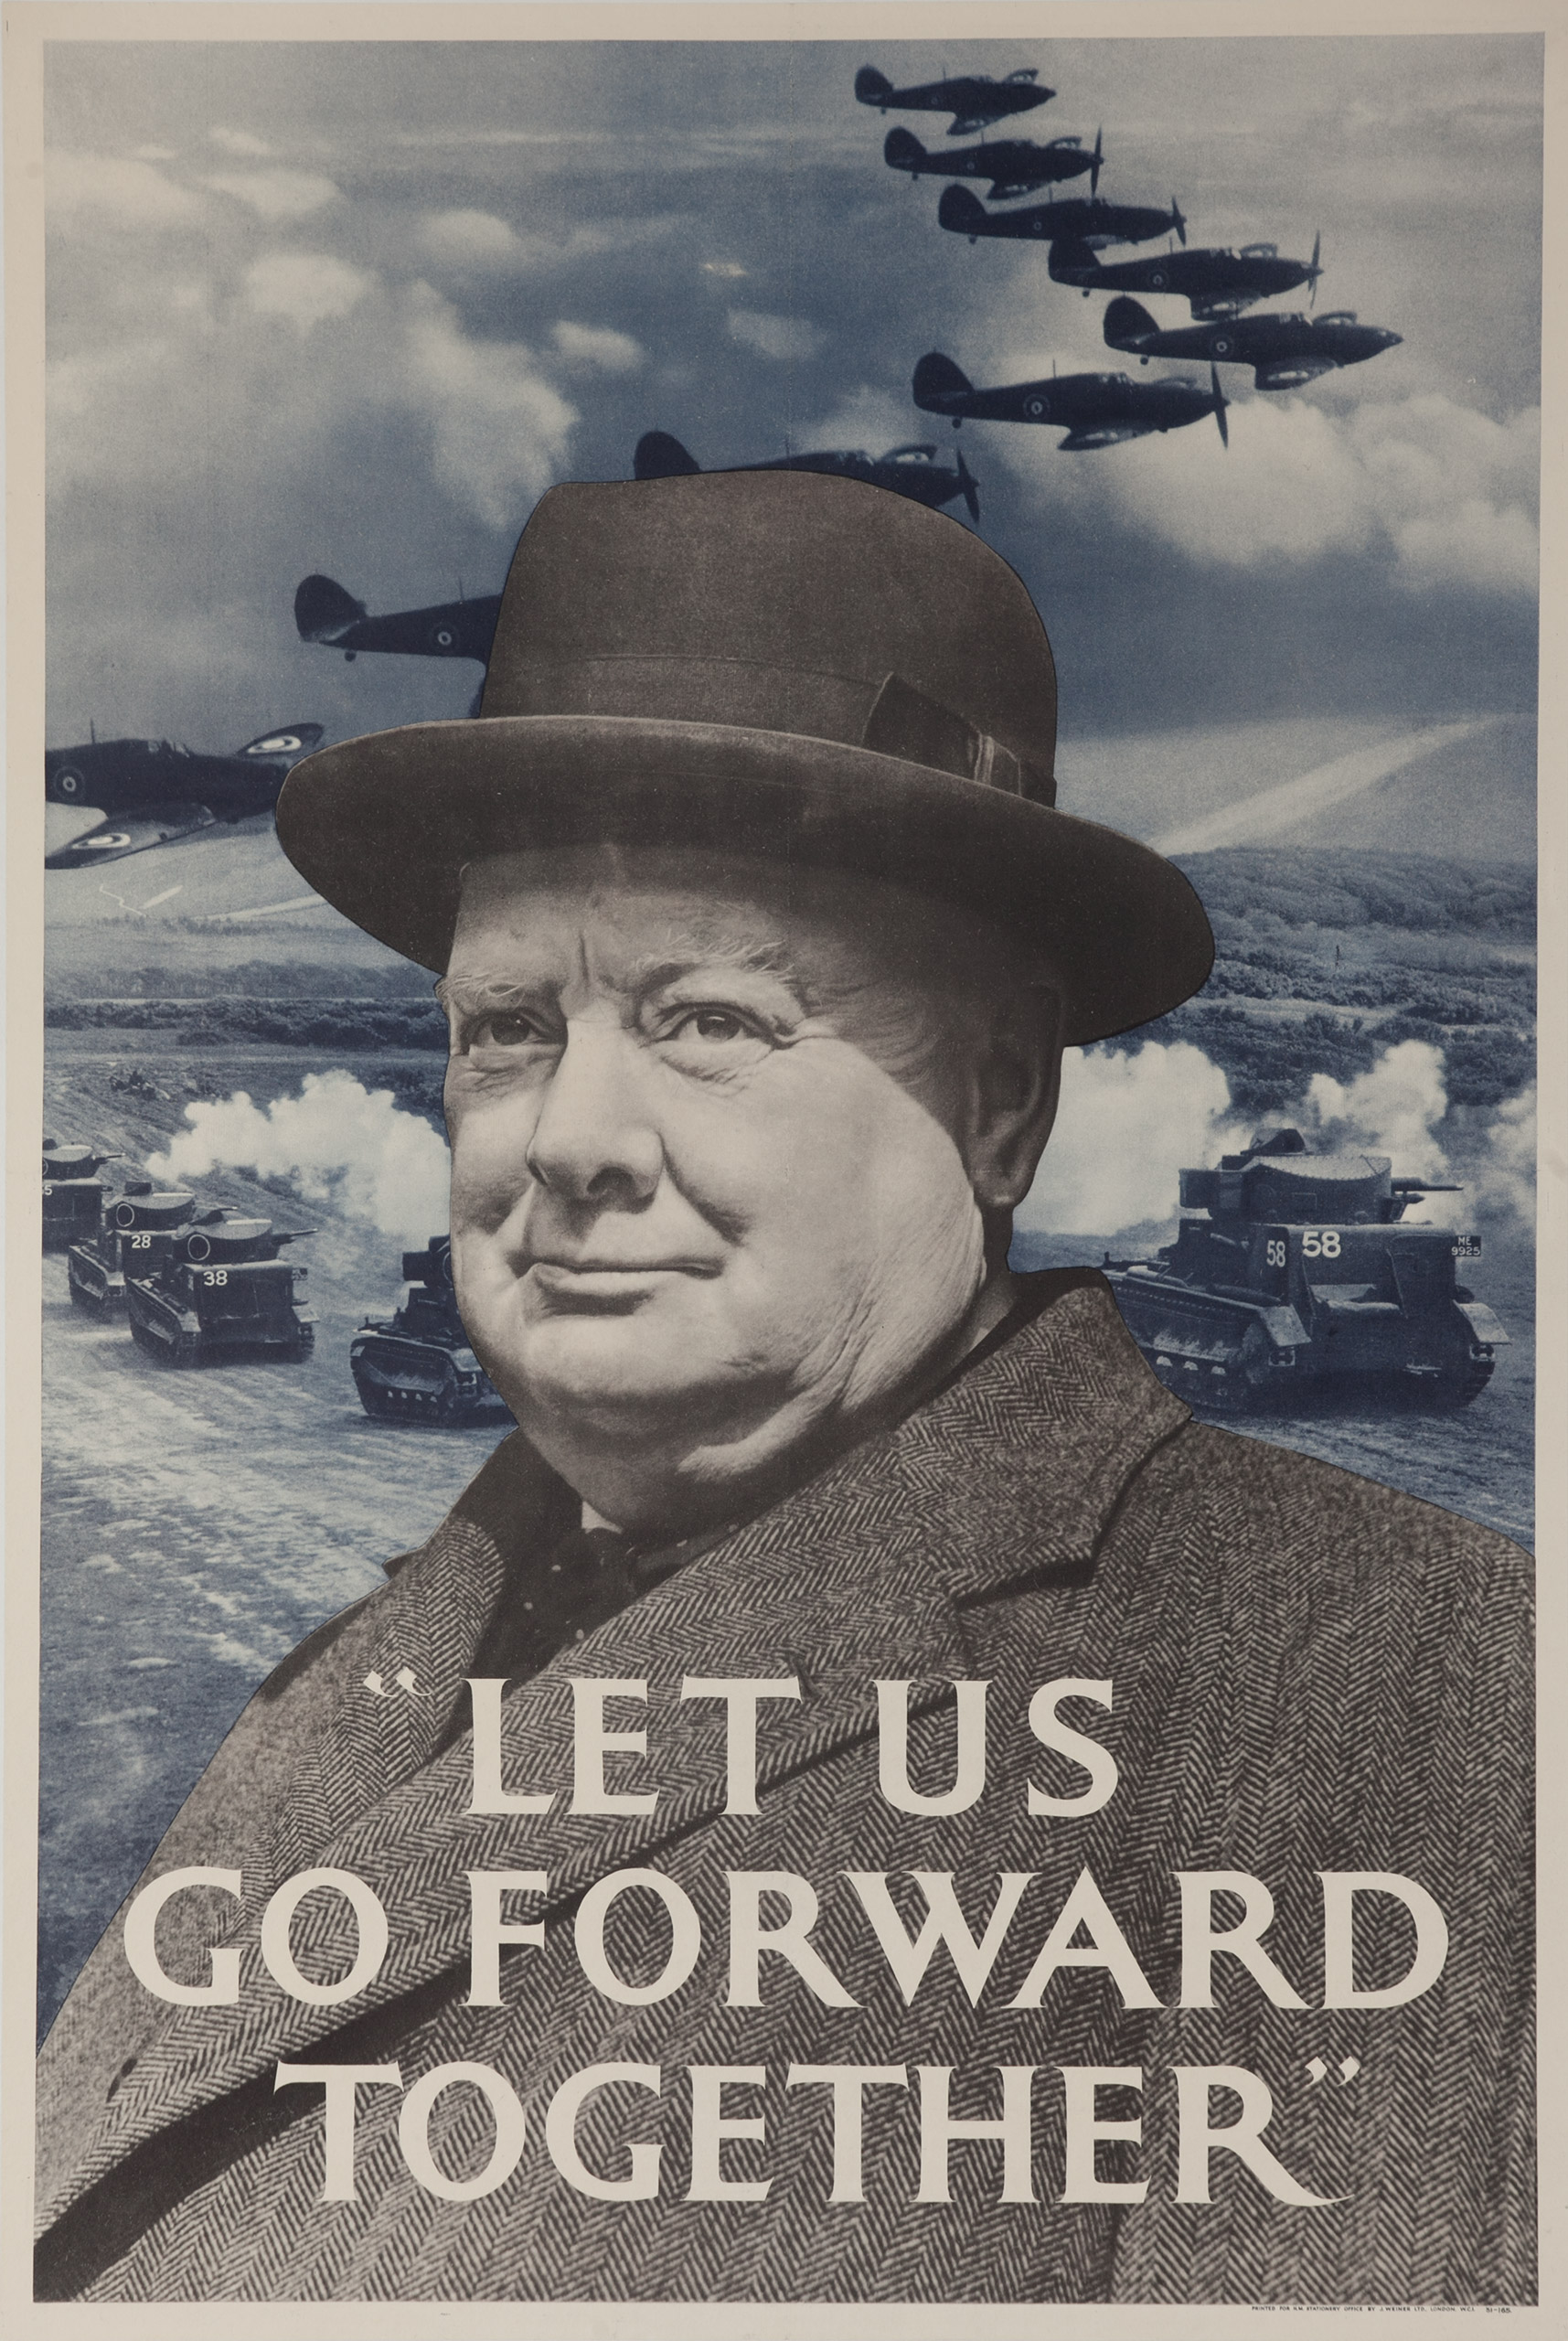 Let Us Go Forward Together.  WWII poster from London, England, ca. 1940.